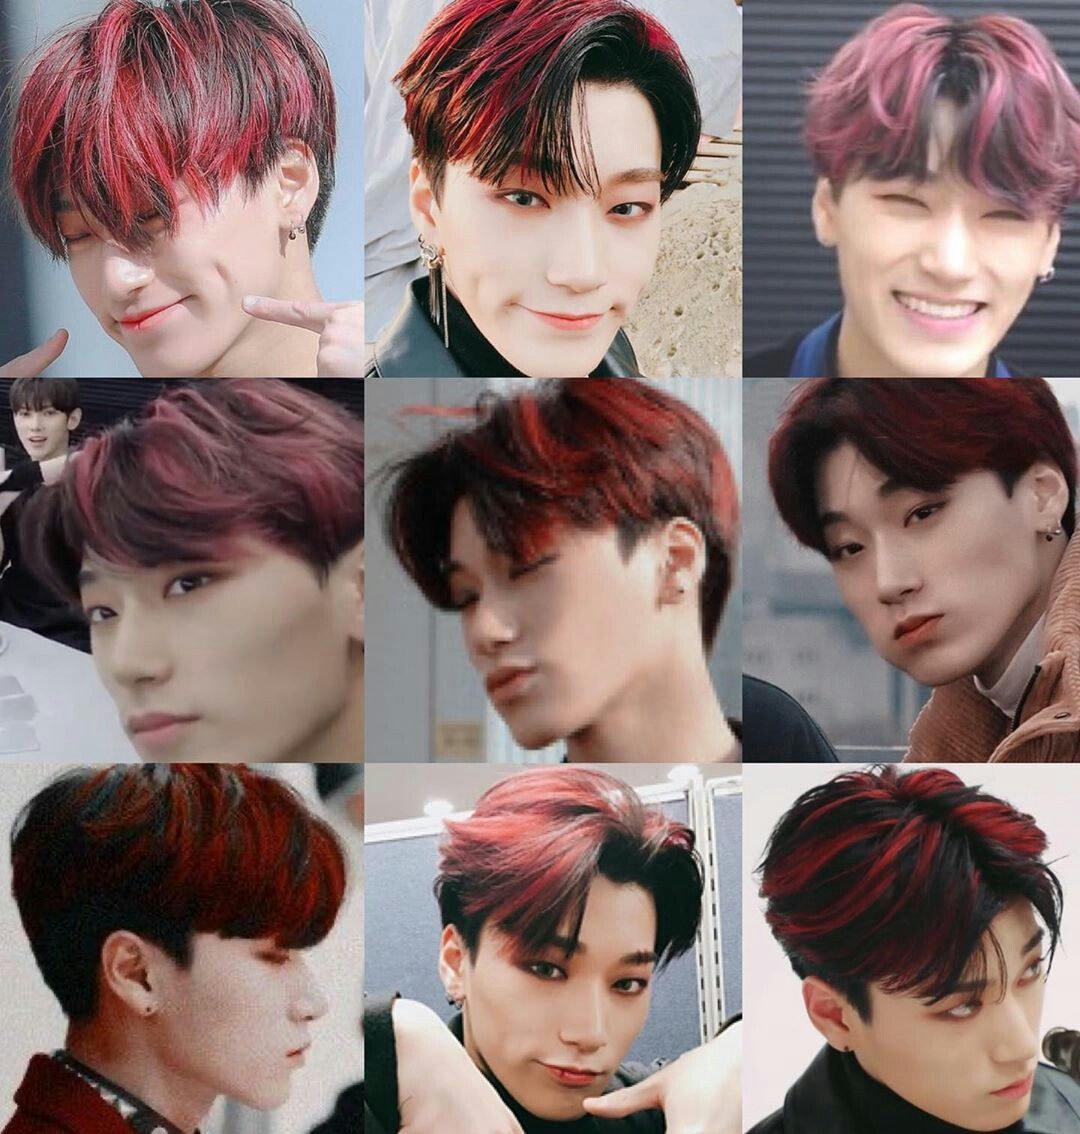 In Conclusion San Suits Every Hair Color He Has Follow Smol San For More Ateez Eightmakesoneteam 8makes1 Kpop Hair Color Kpop Hair Hair Color